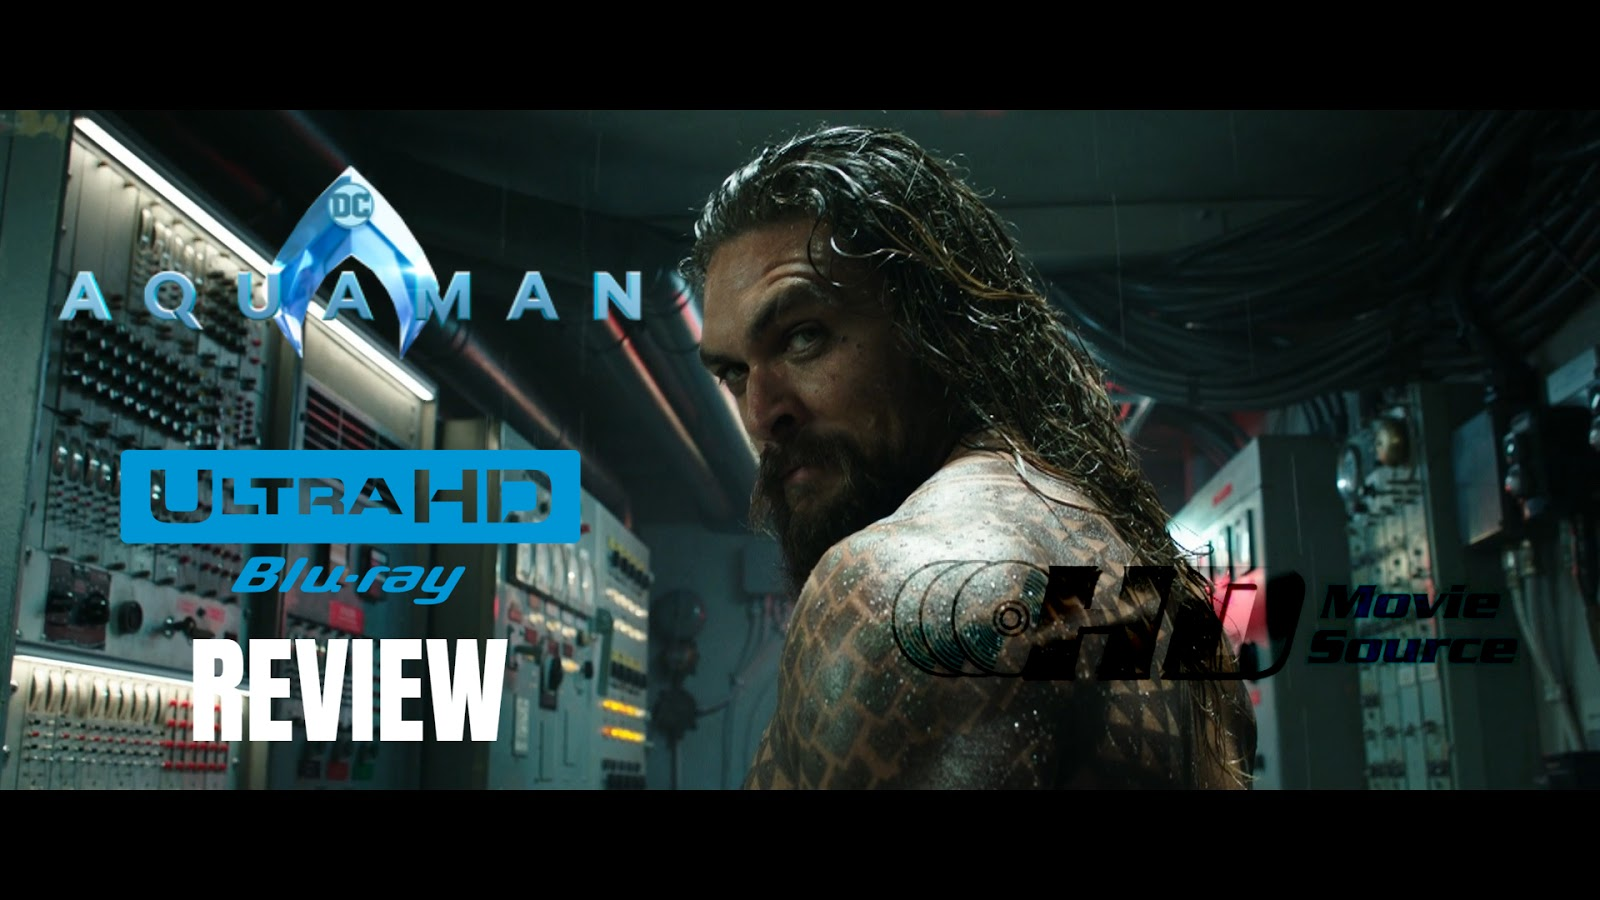 Aquaman 4K Ultra HD Blu-ray Blu-ray Review